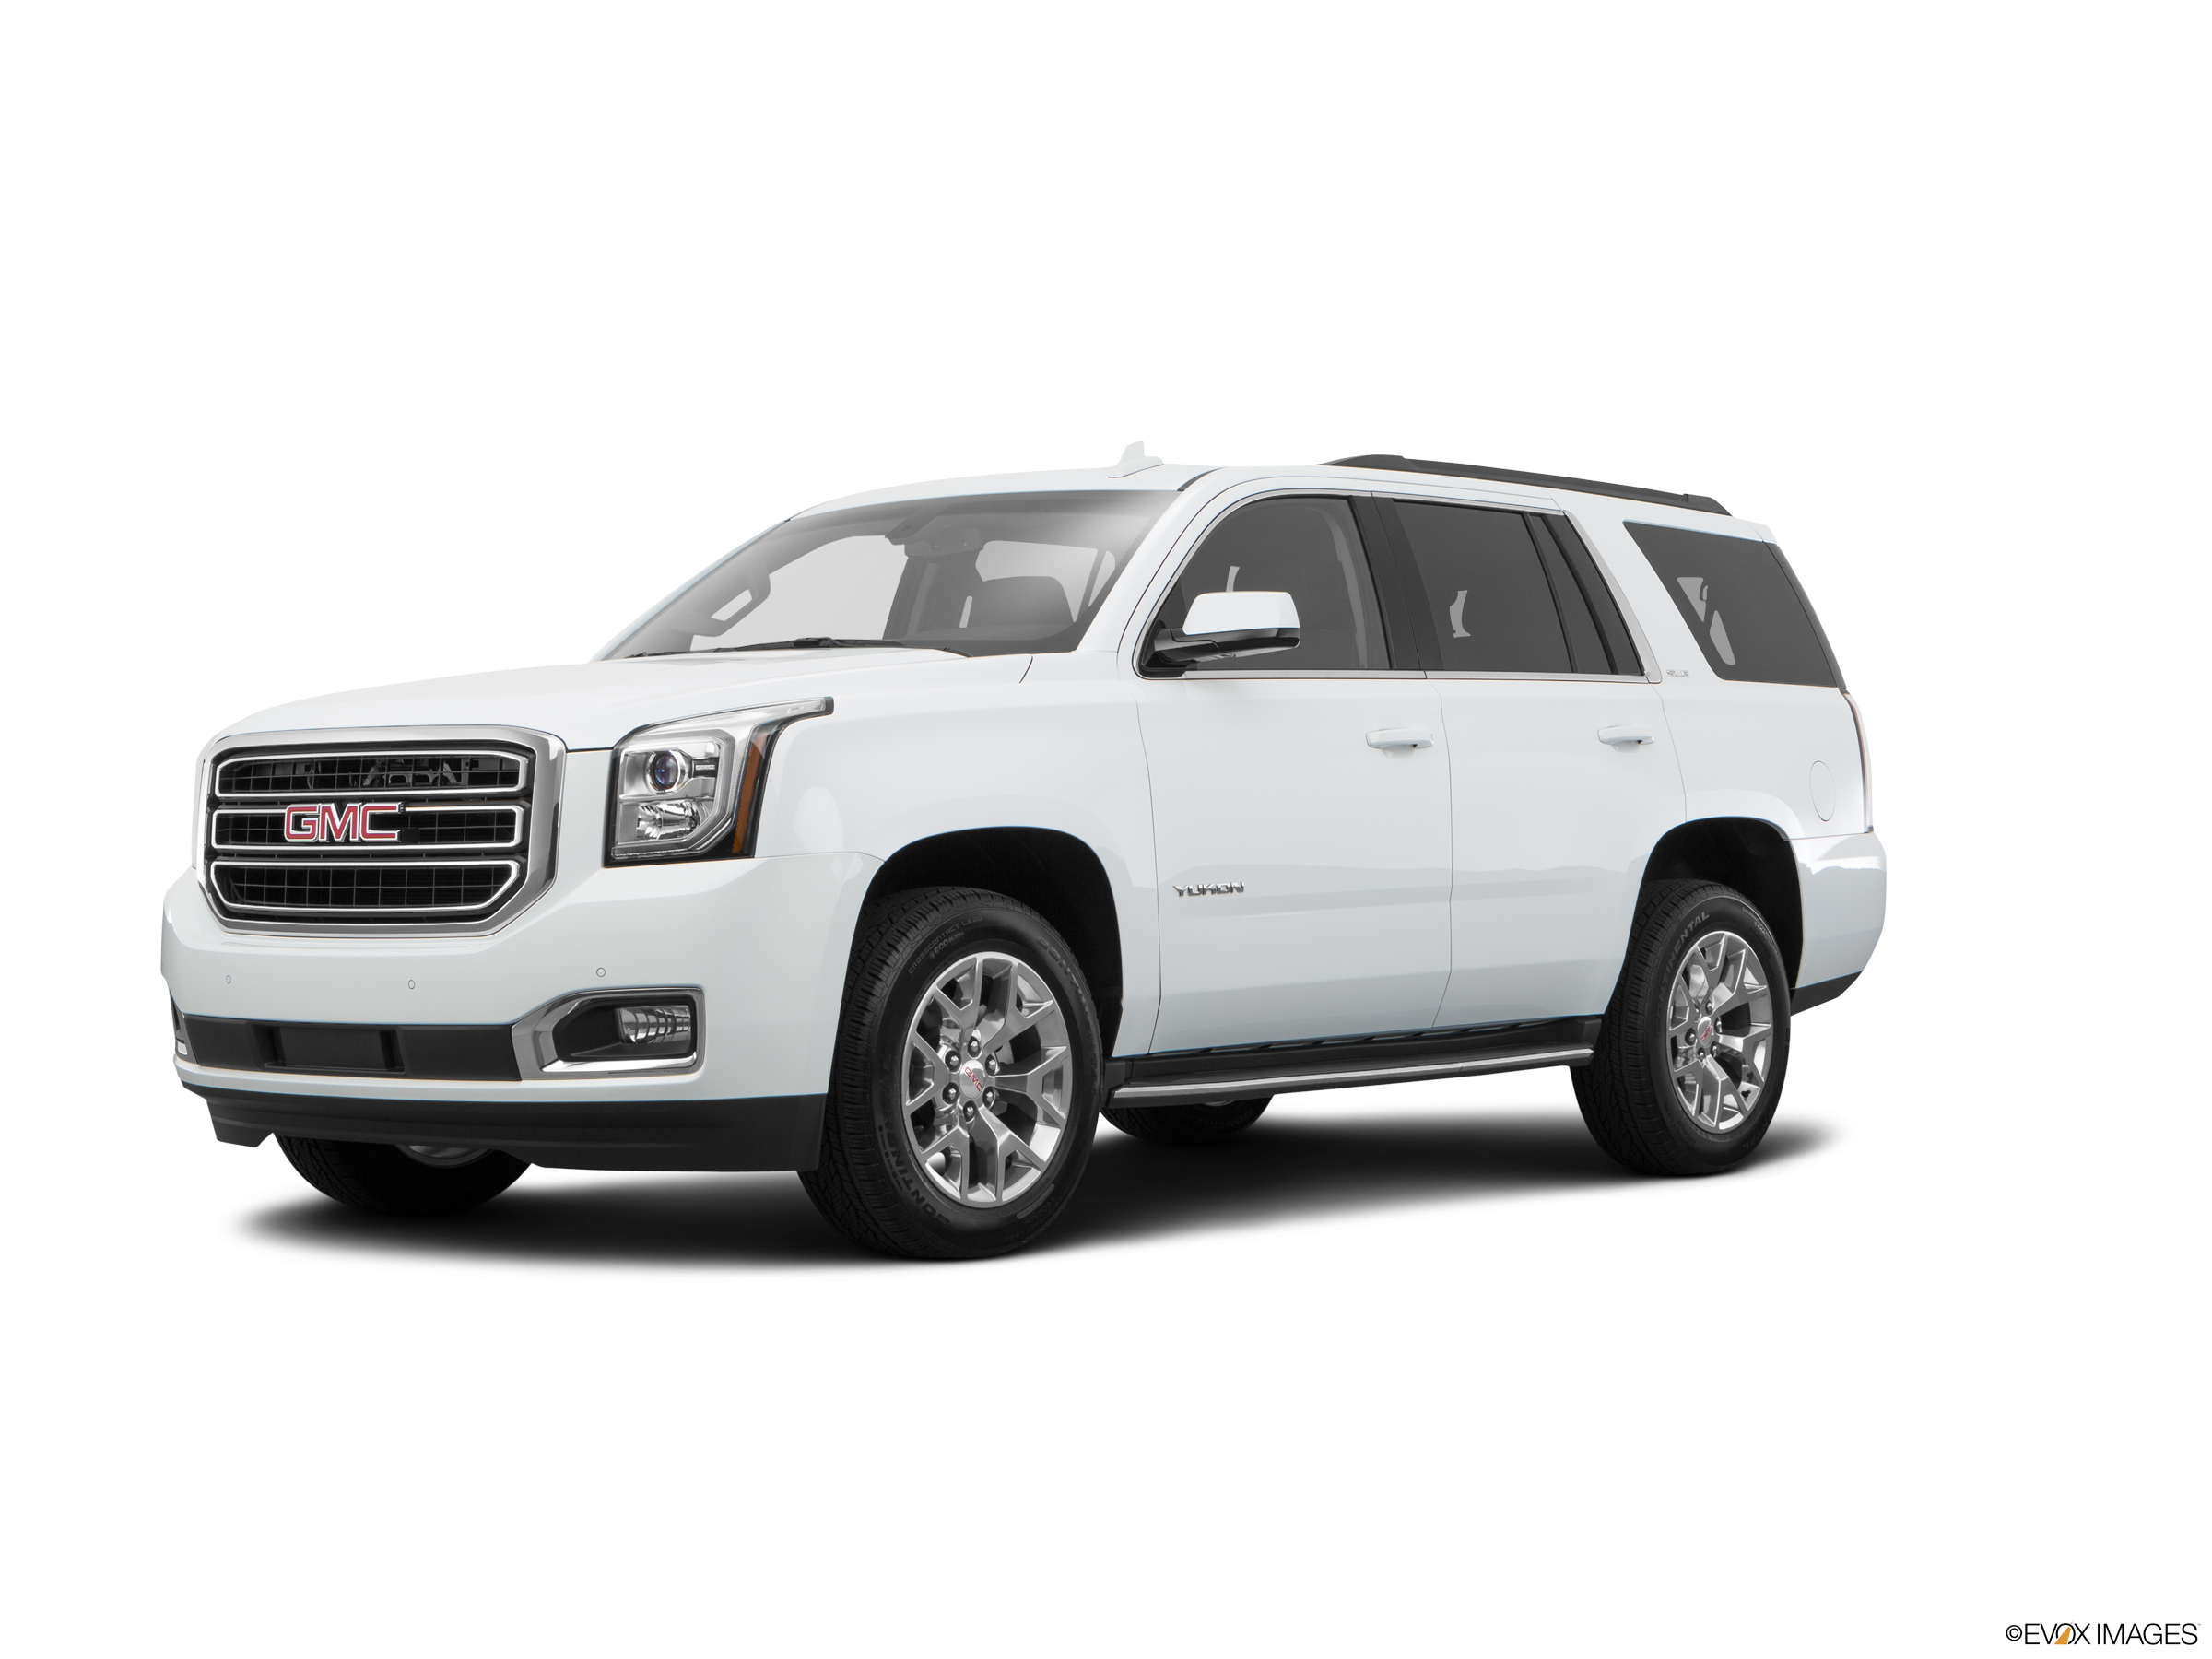 2017 Gmc Yukon Values Cars For Sale Kelley Blue Book